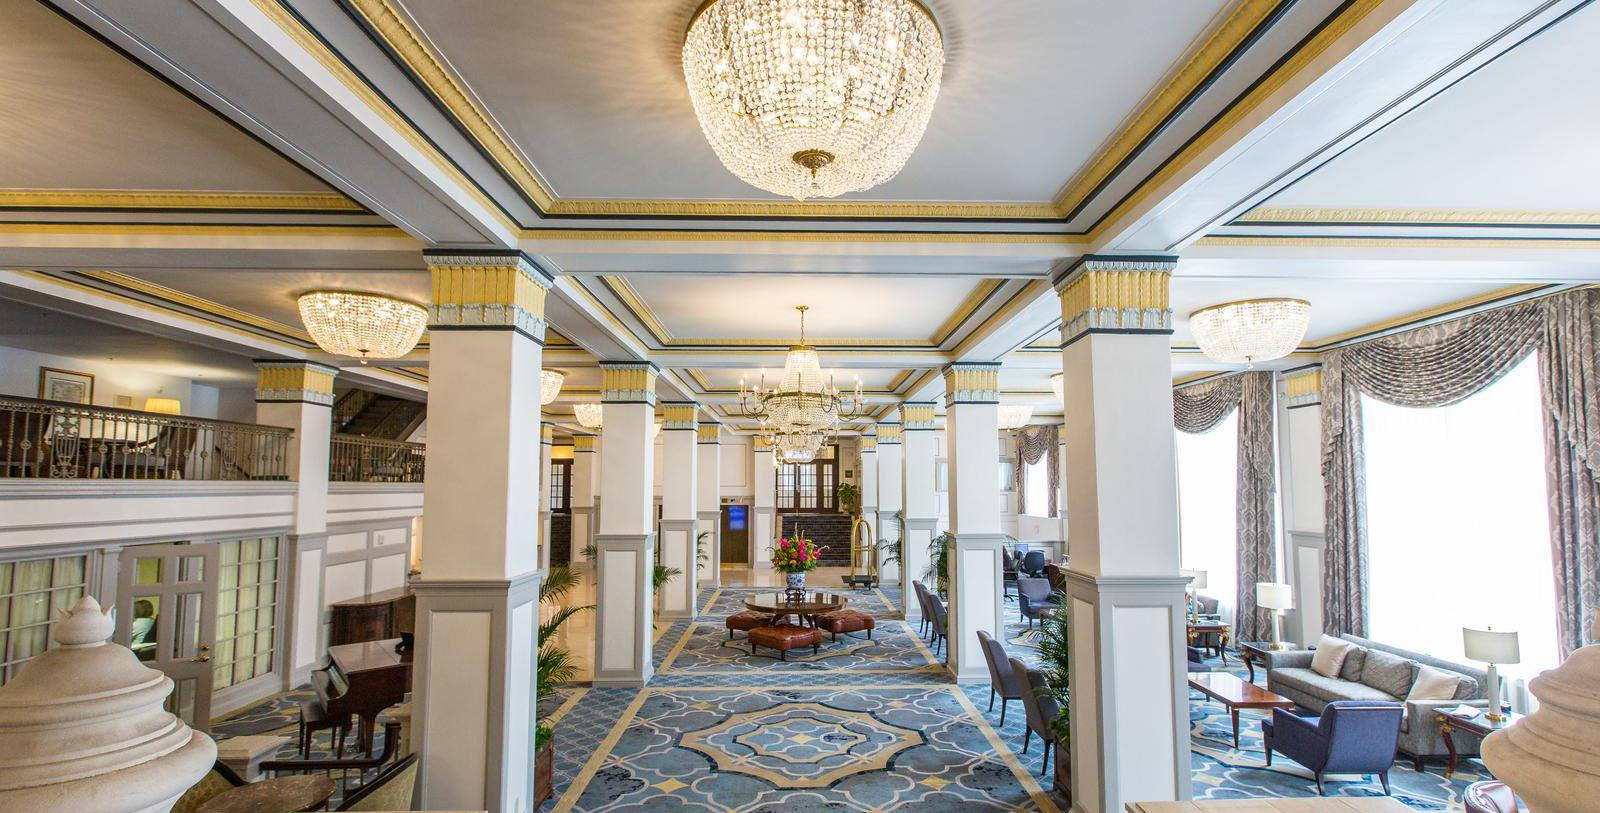 Image of hotel lobby at Francis Marion Hotel, 1924, Member of Historic Hotels of America, in Charleston, South Carolina, Overview